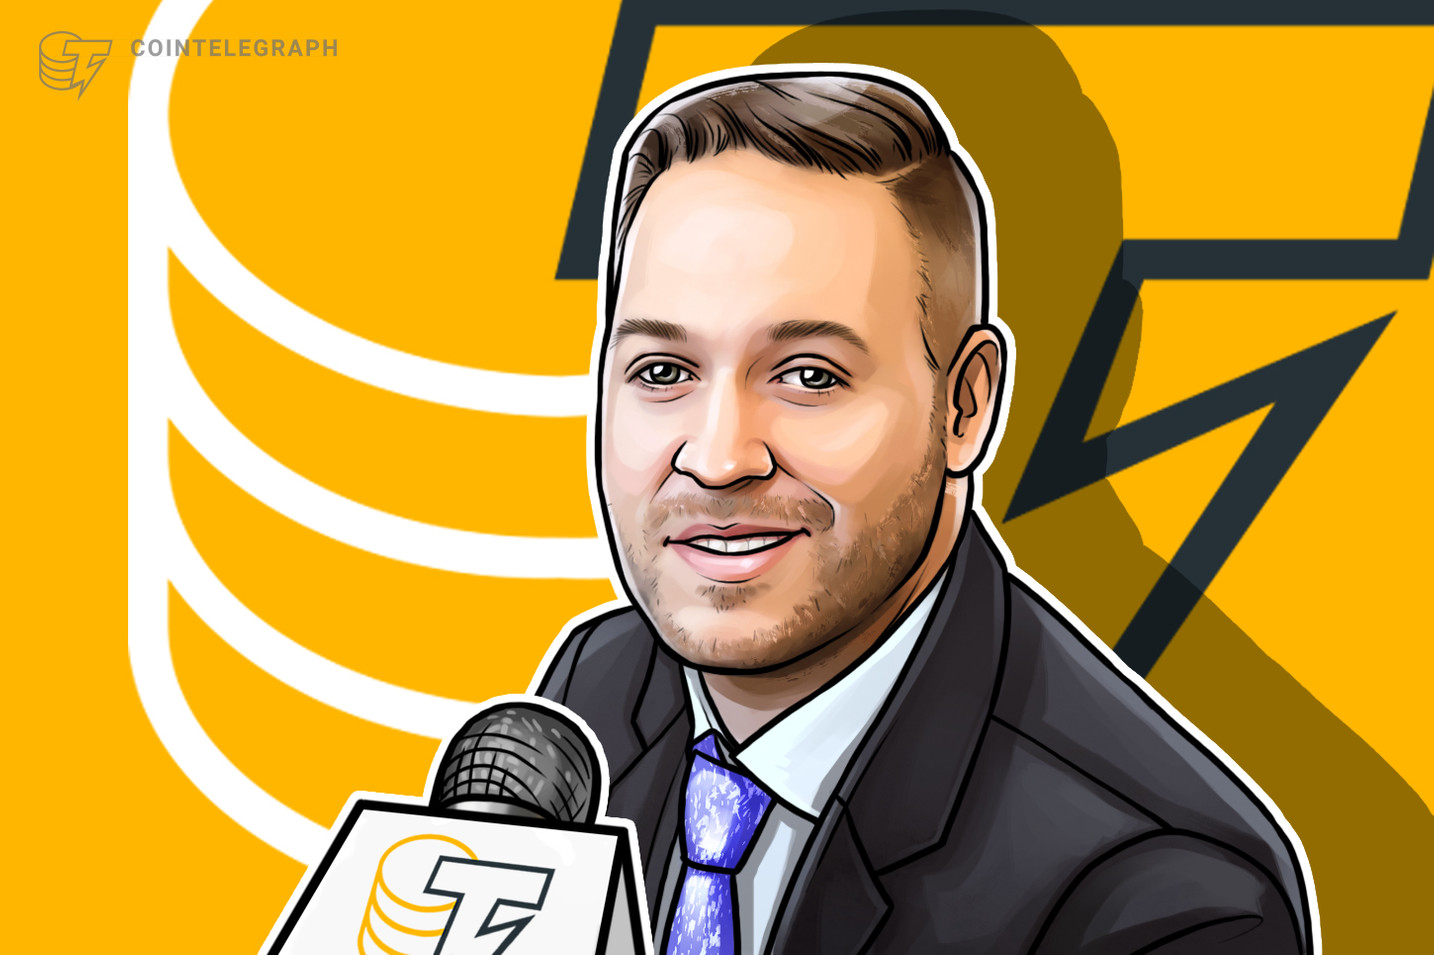 Chainalysis' Jesse Spiro on Crypto Wallet Blocking and Its Potential Impact